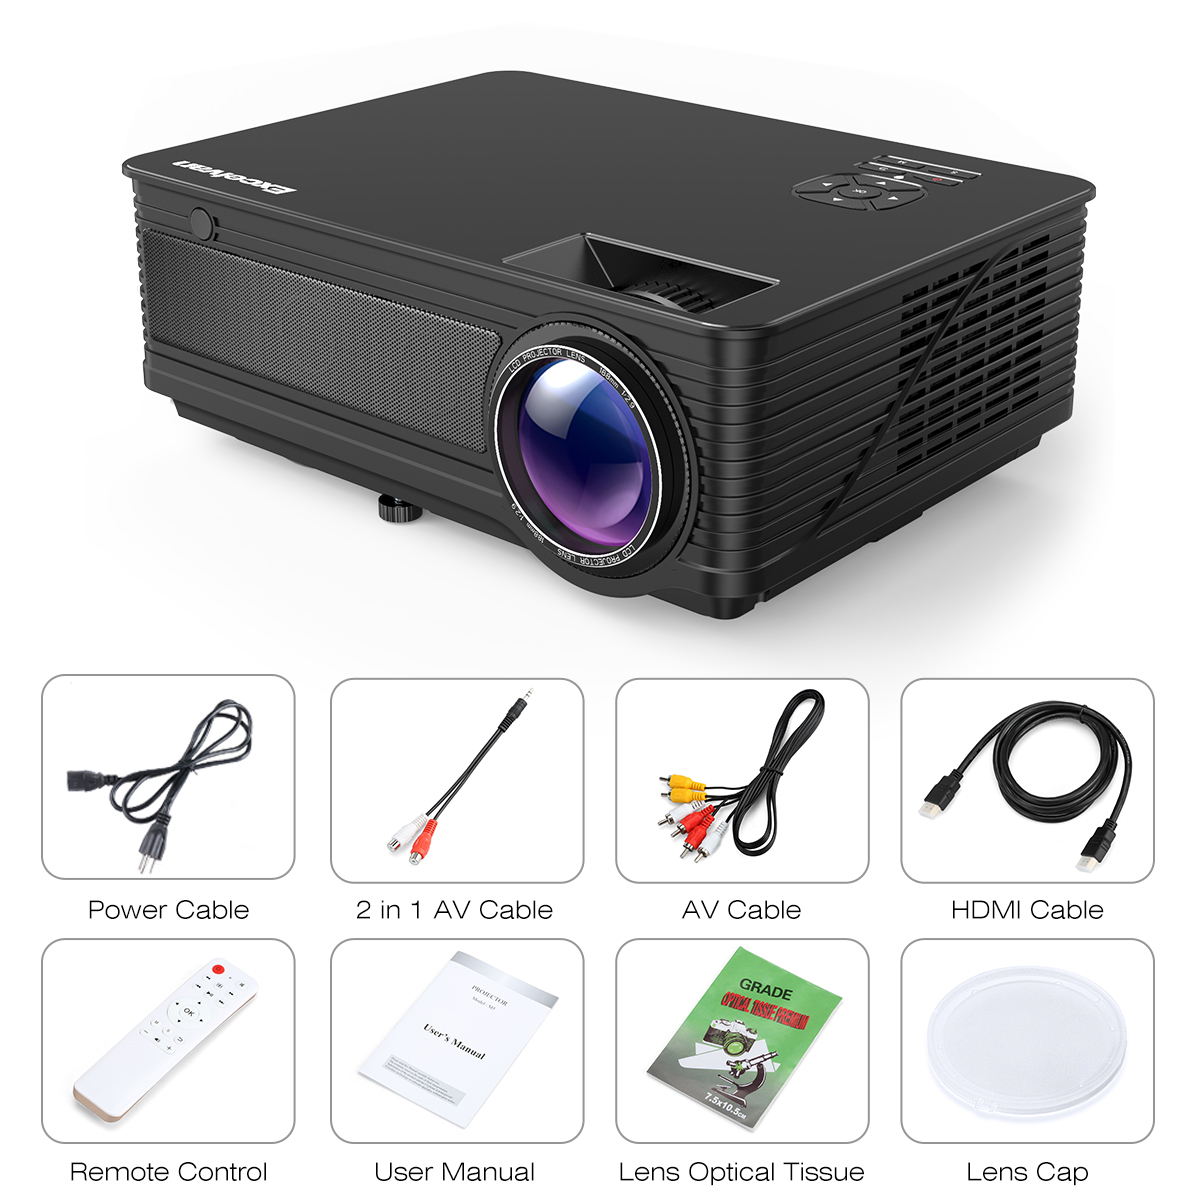 Excelvan Cl720 Full Hd Home Theater Projector 3000 Lumen: Excelvan M5 3500 Lumen LED Full HD Projector Home Cinema